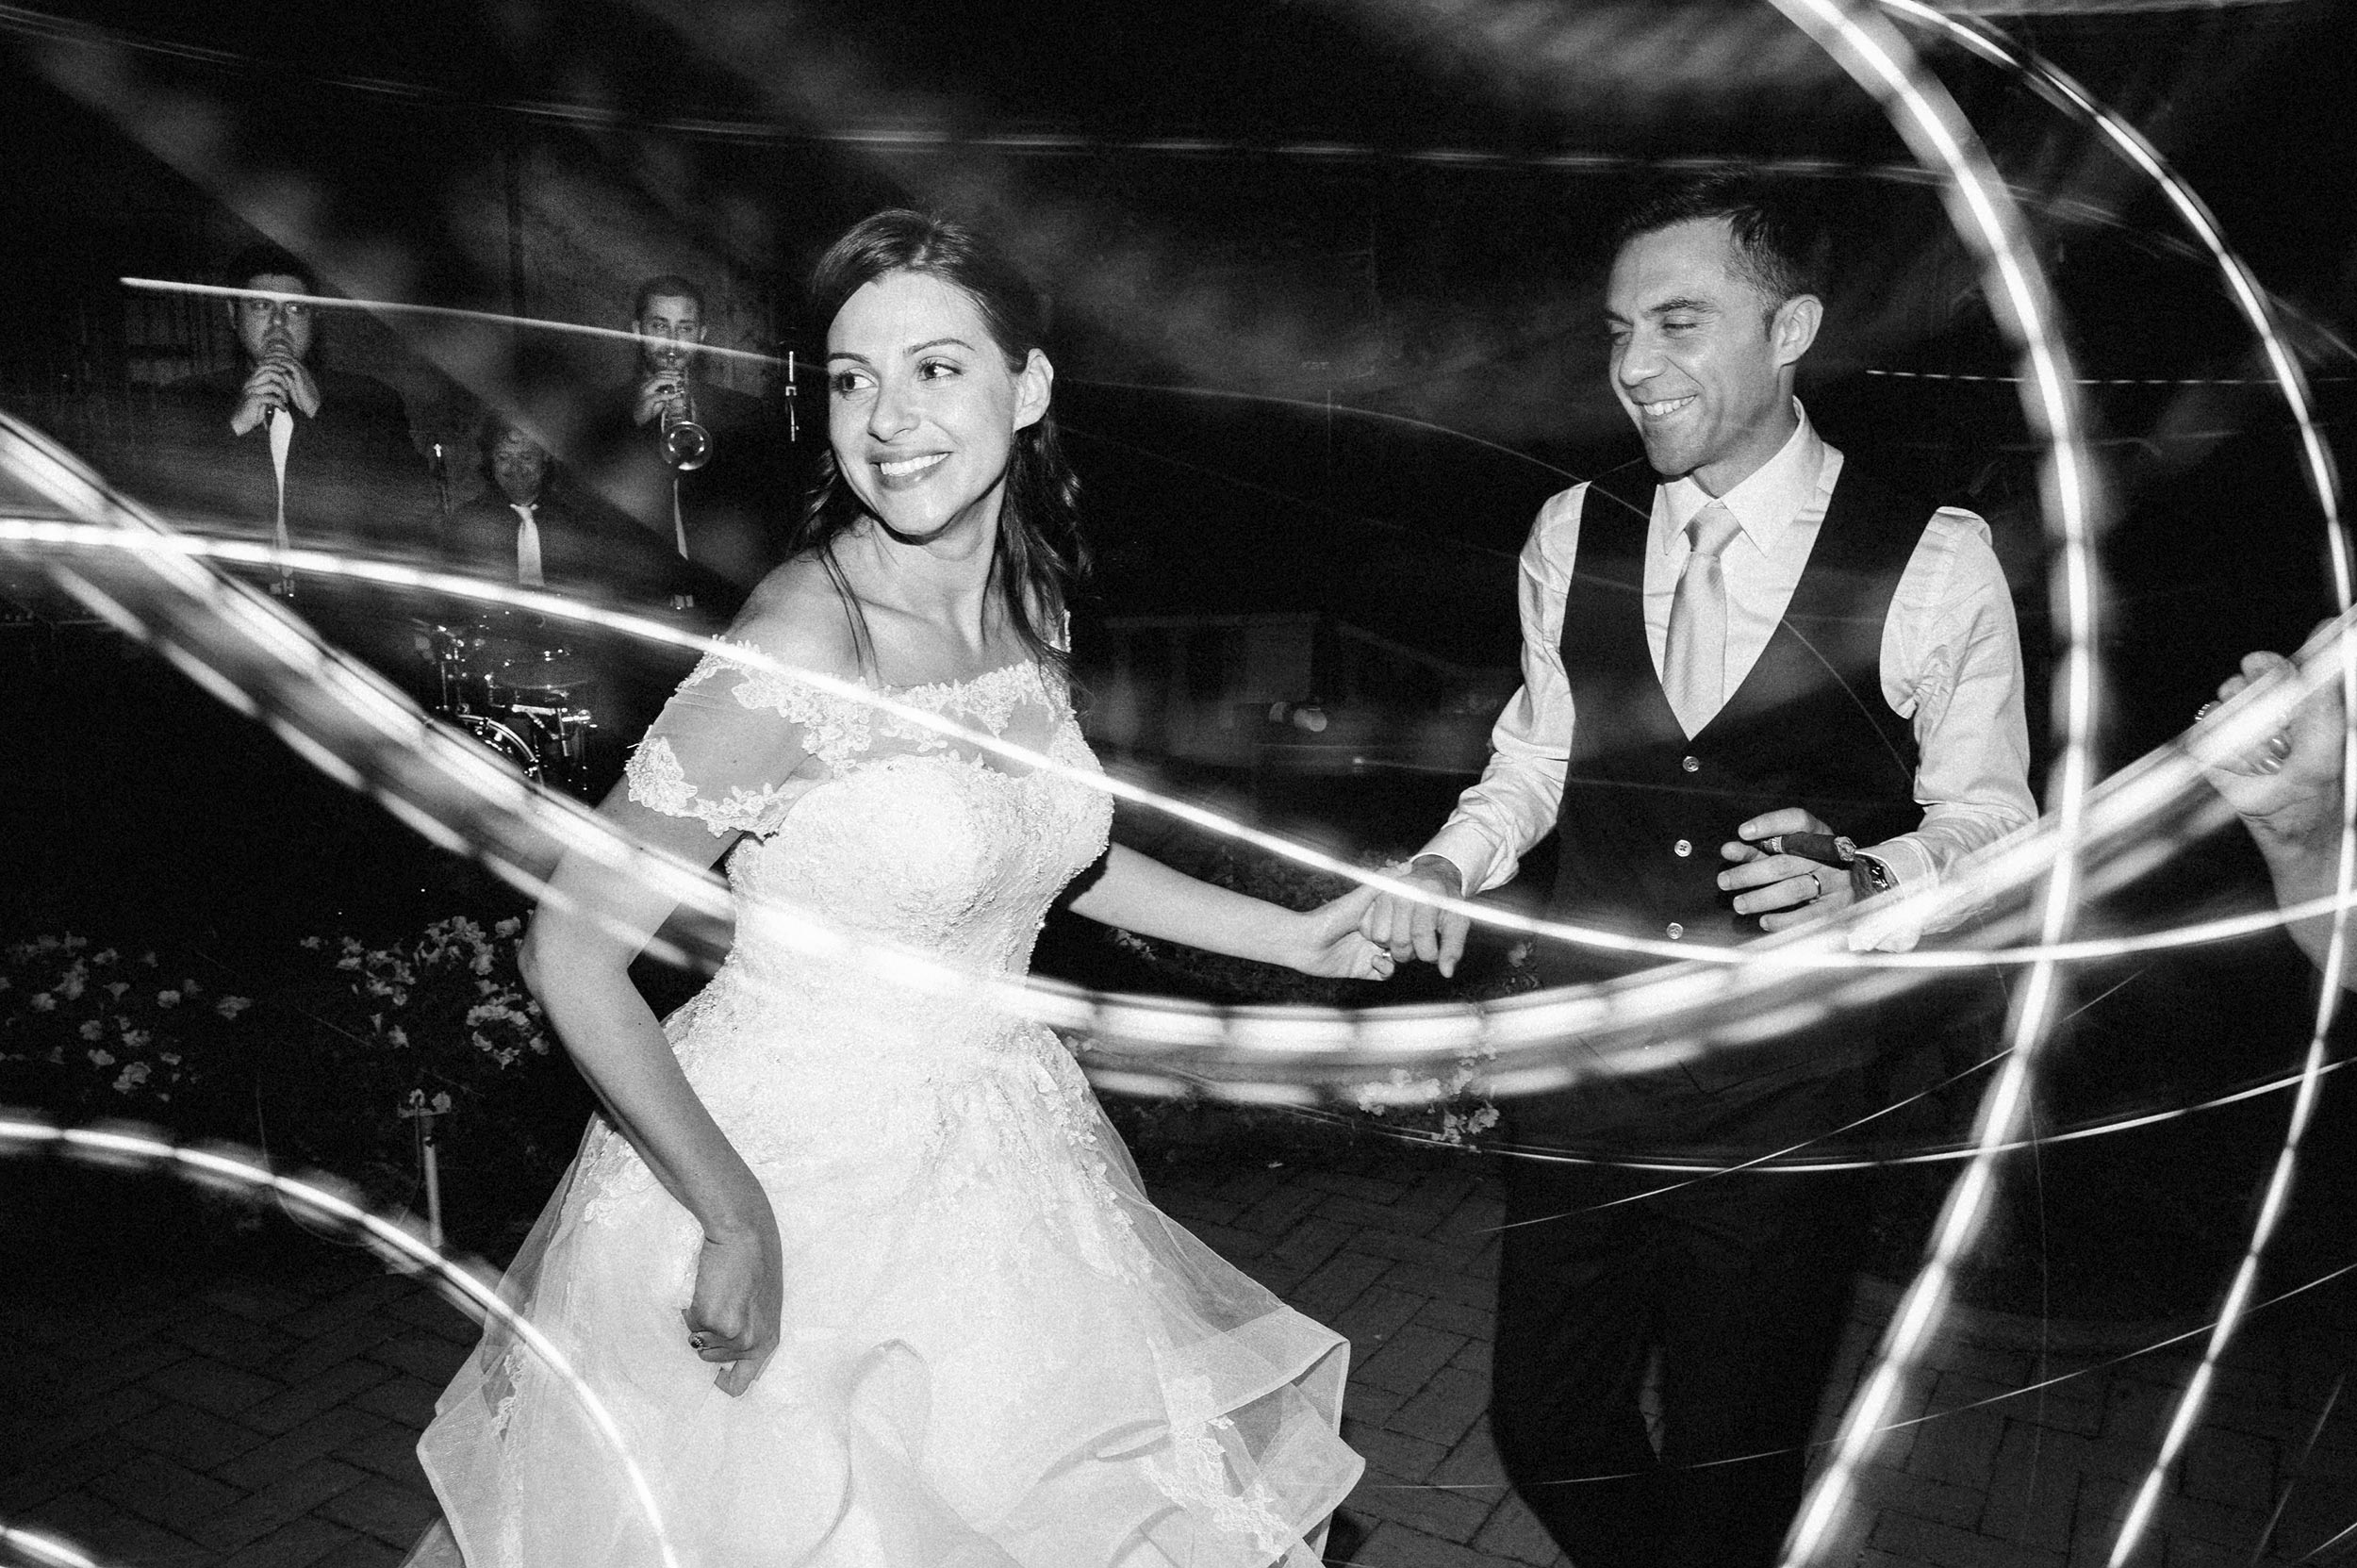 bride-and-groom-on-the-dancefloor-southern-italy-black-and-white-wedding-photography.jpg